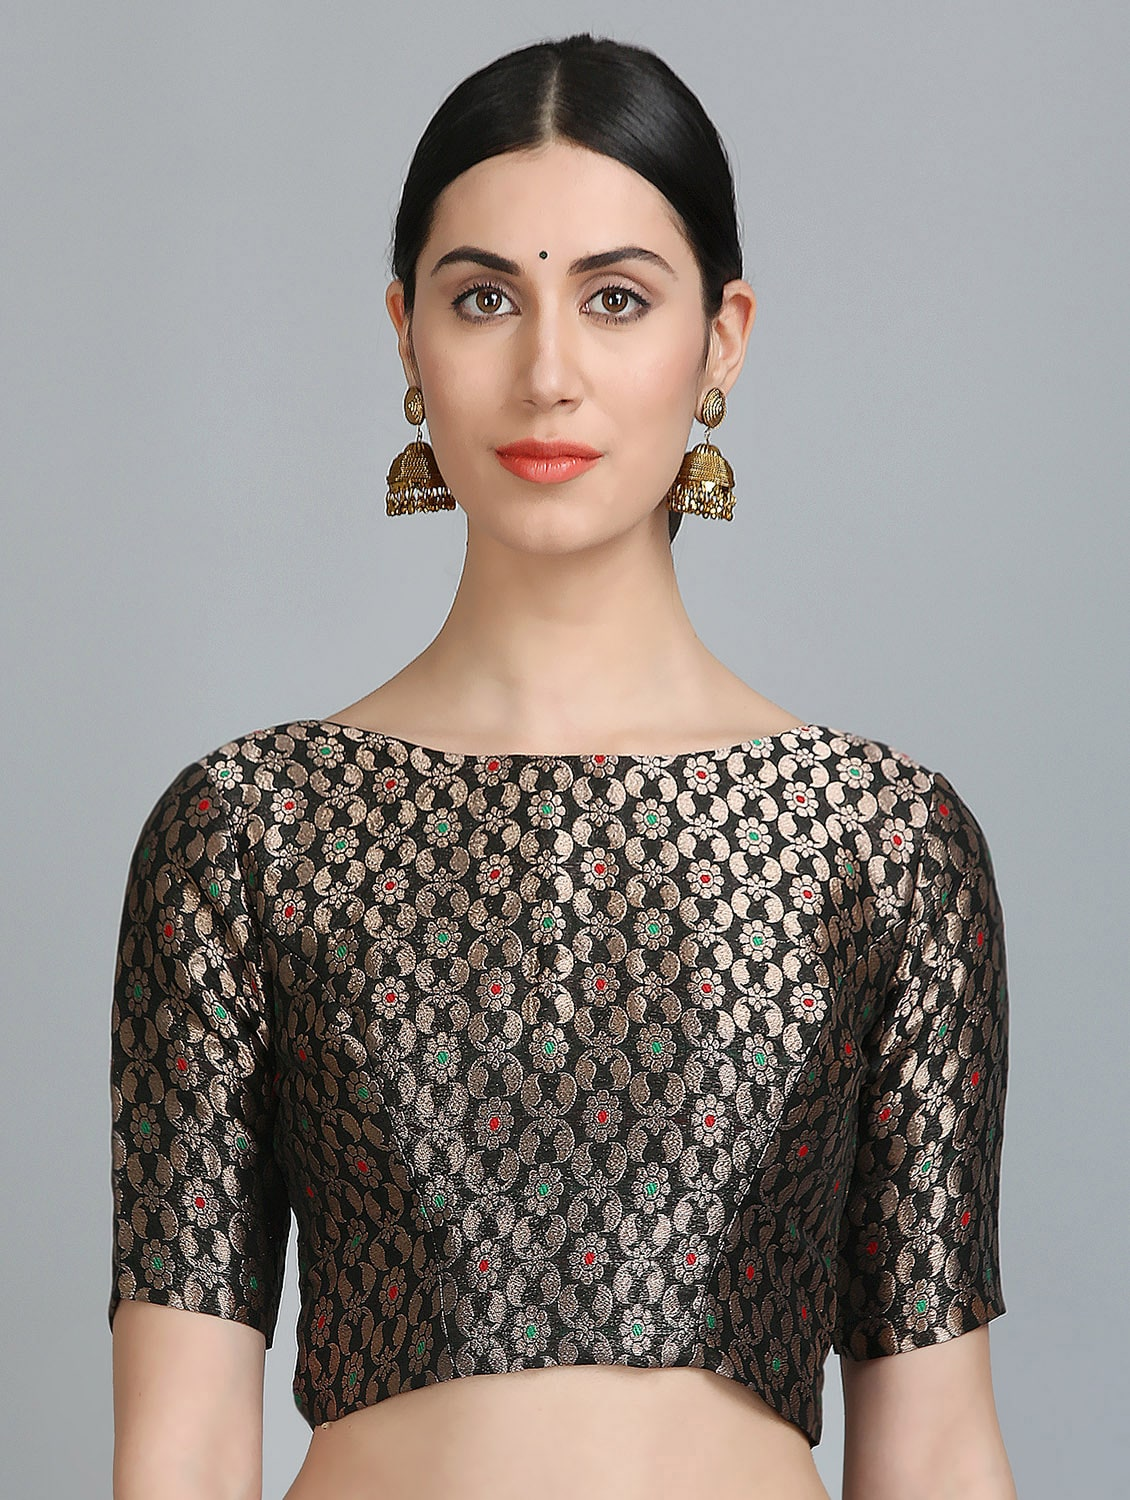 7f6c5dc209ebb5 ... KAANCHIE NANGGIA black brocade stitched blouse - 14251091 - Zoom Image  - 1